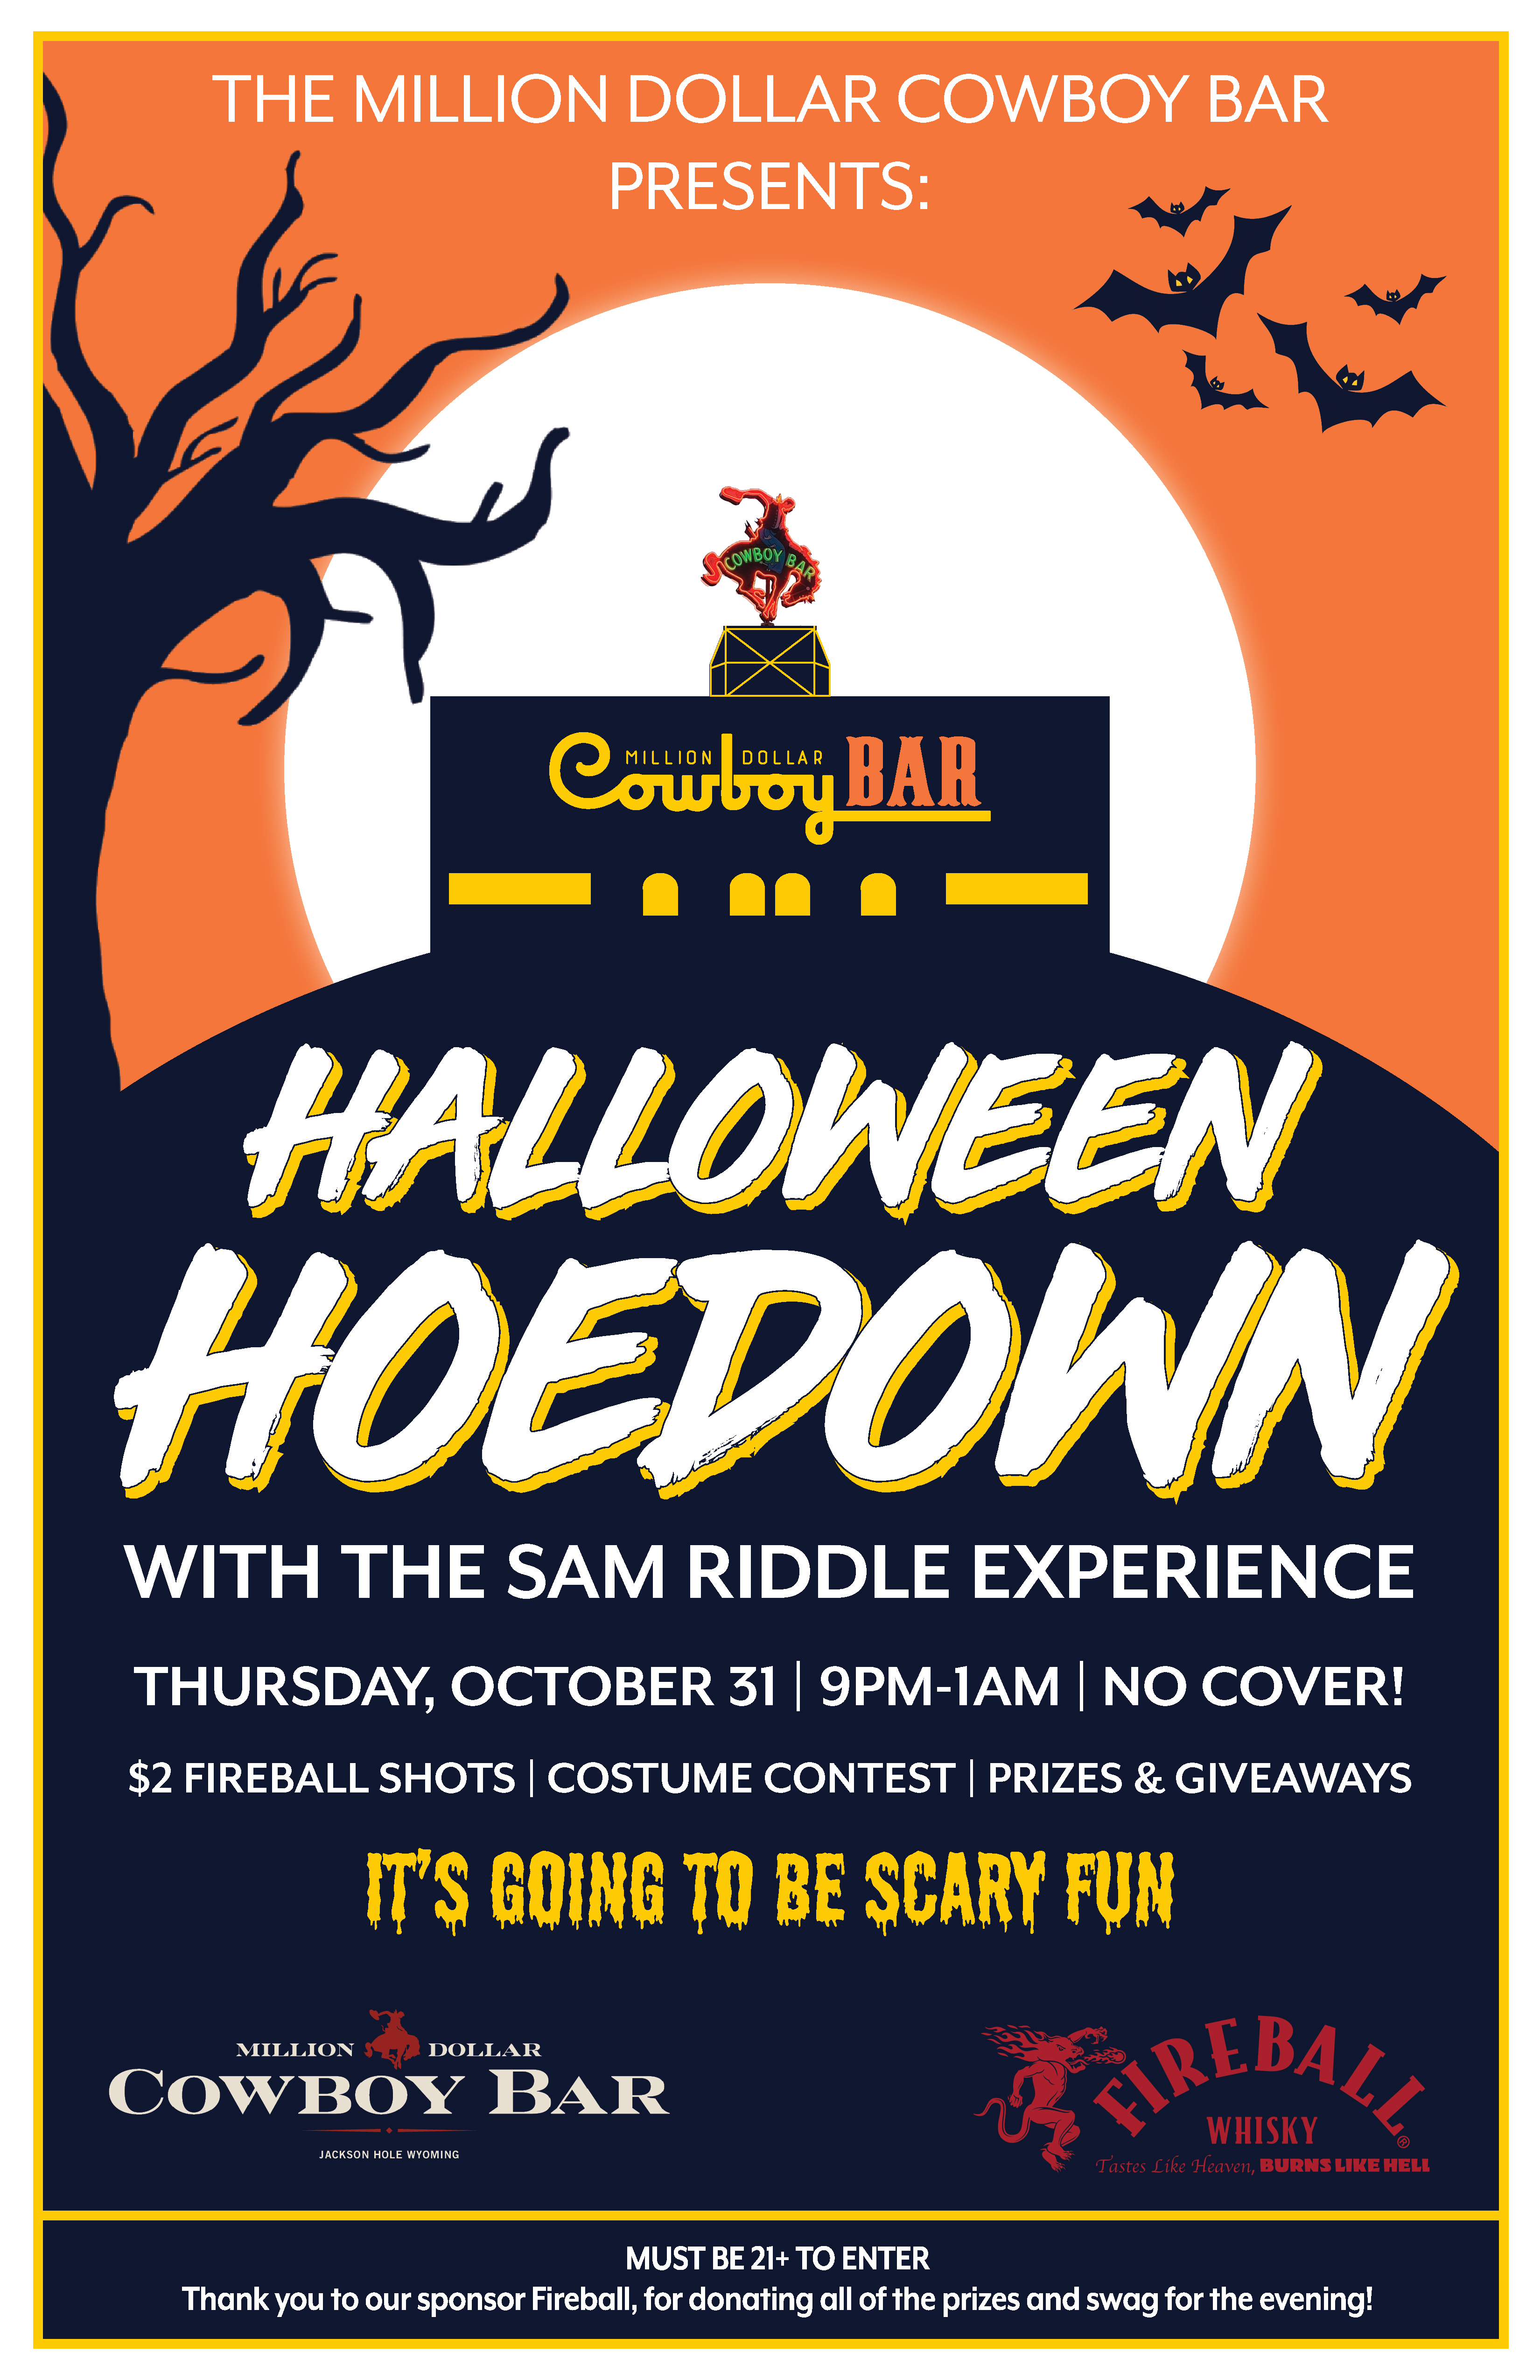 Halloween Hoedown with the Sam Riddle Experience